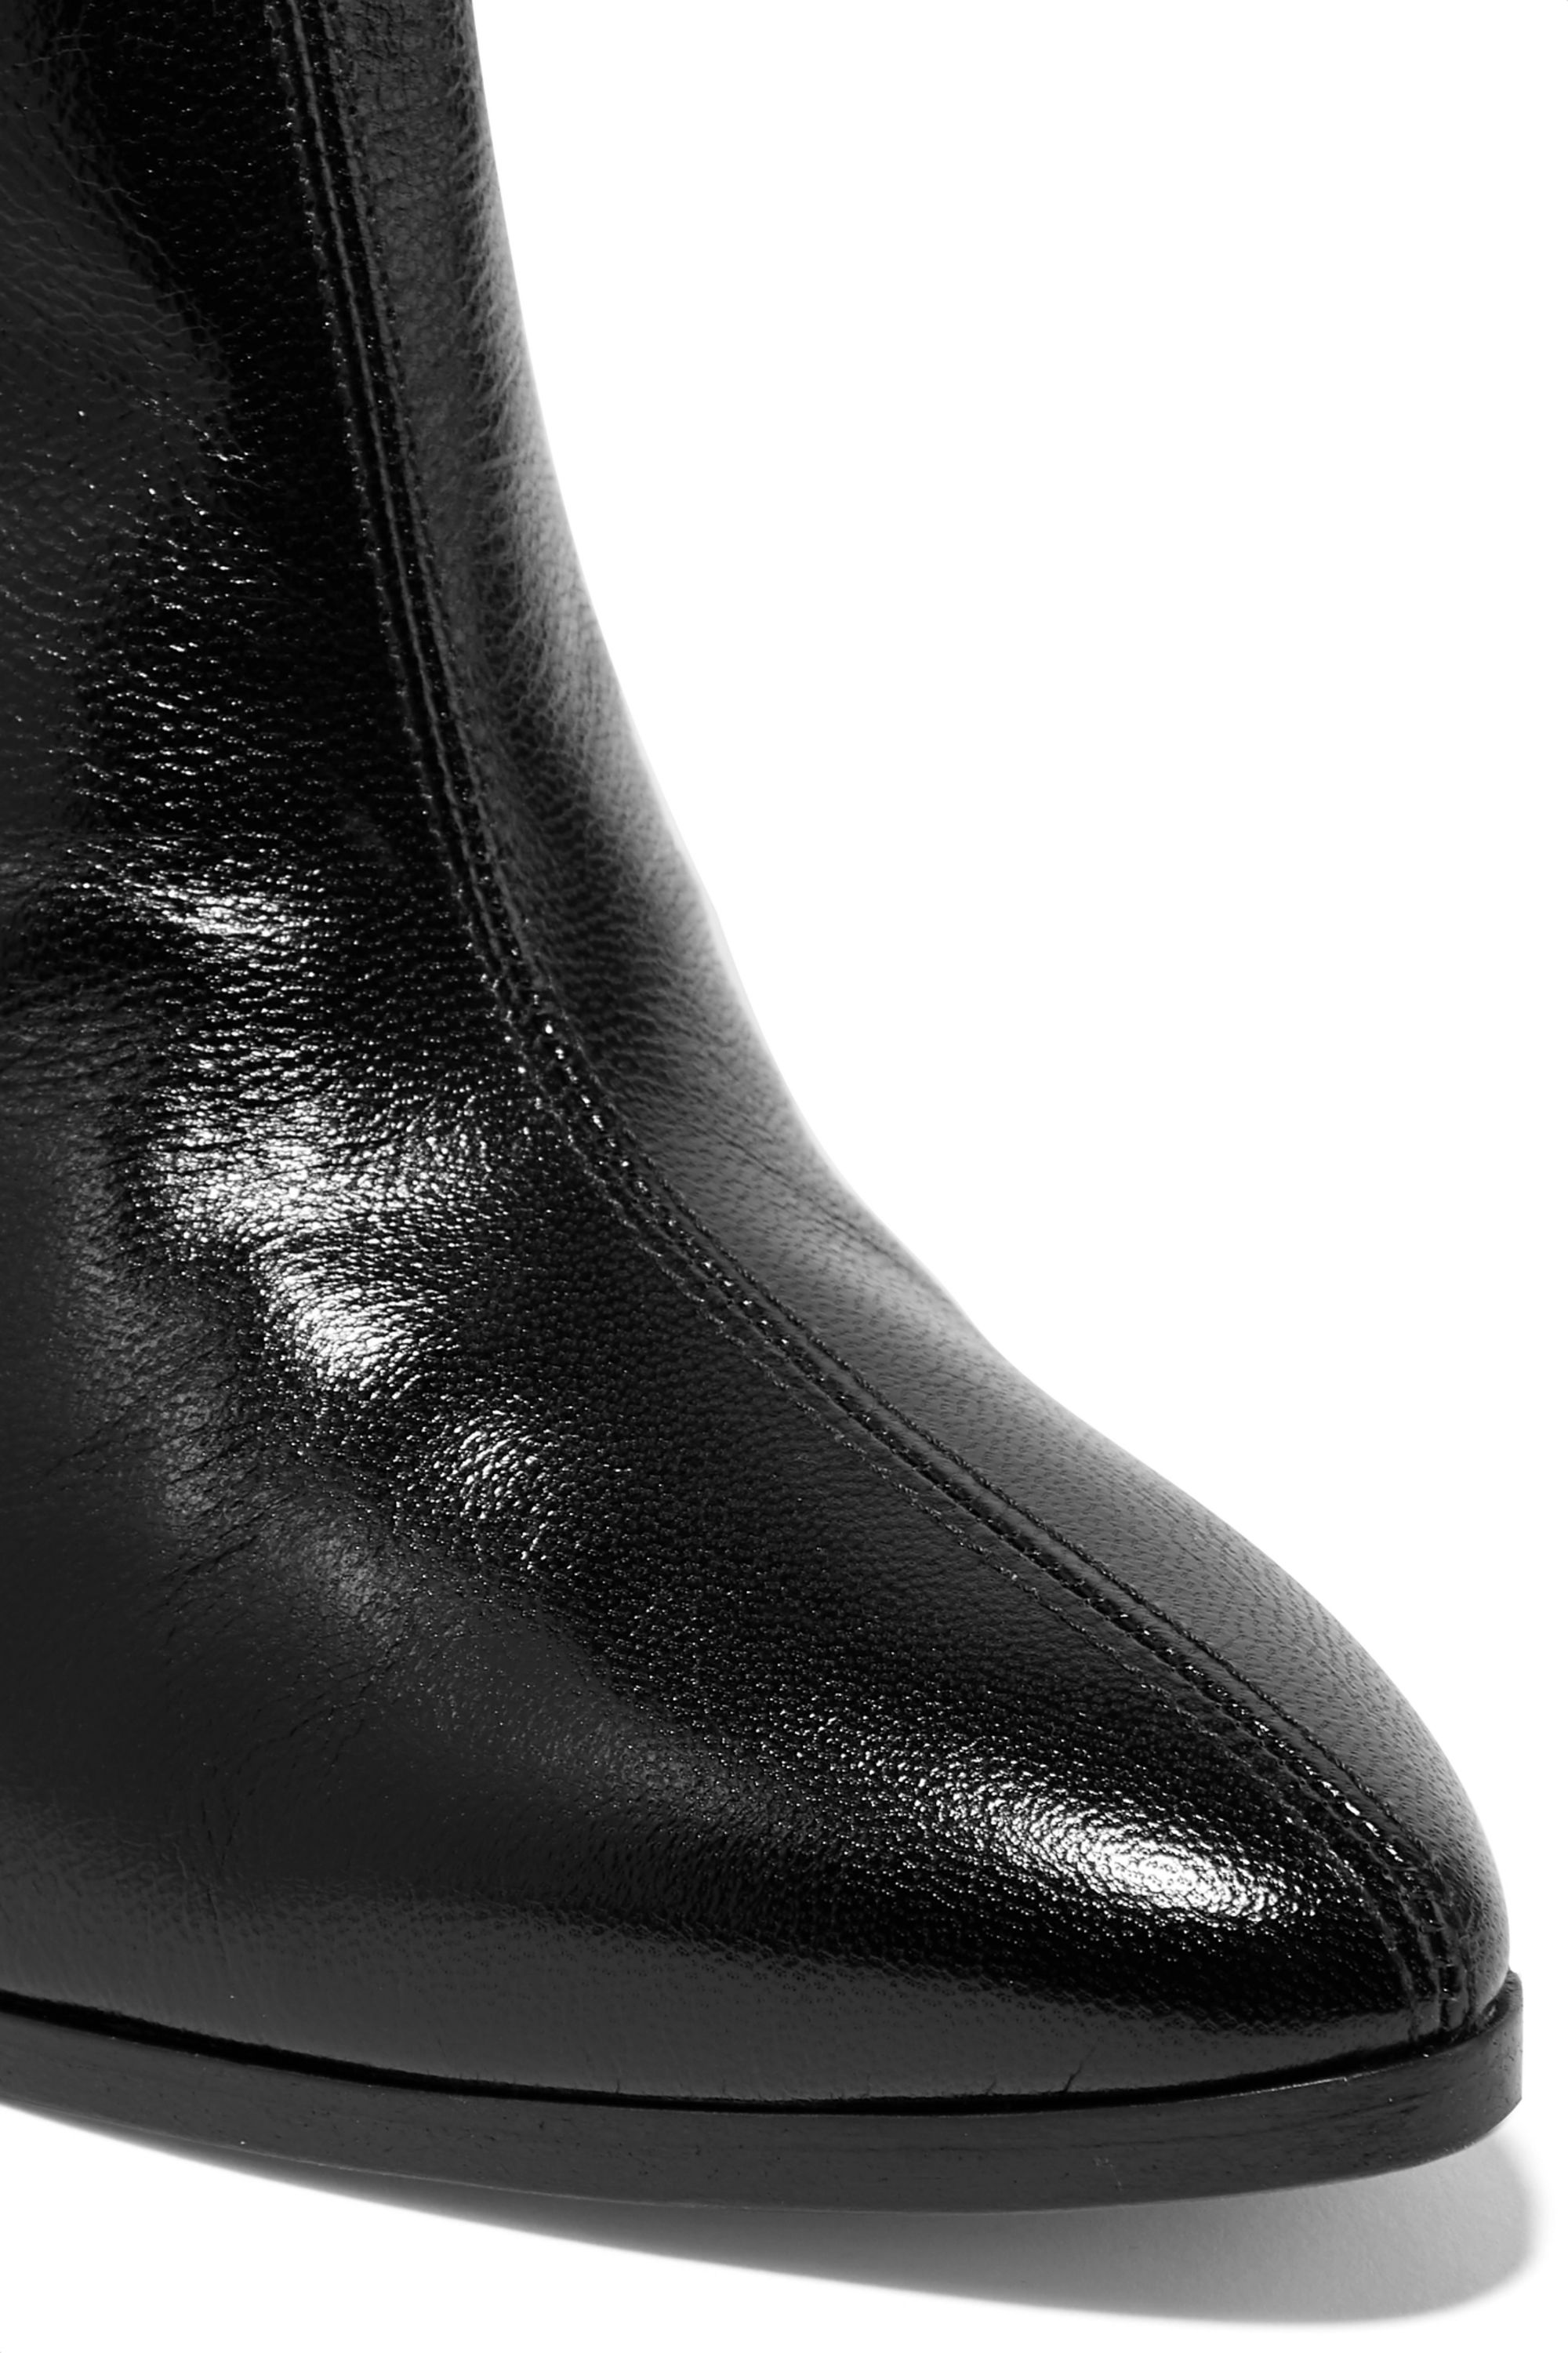 Givenchy GV3 suede-trimmed textured-leather ankle boots